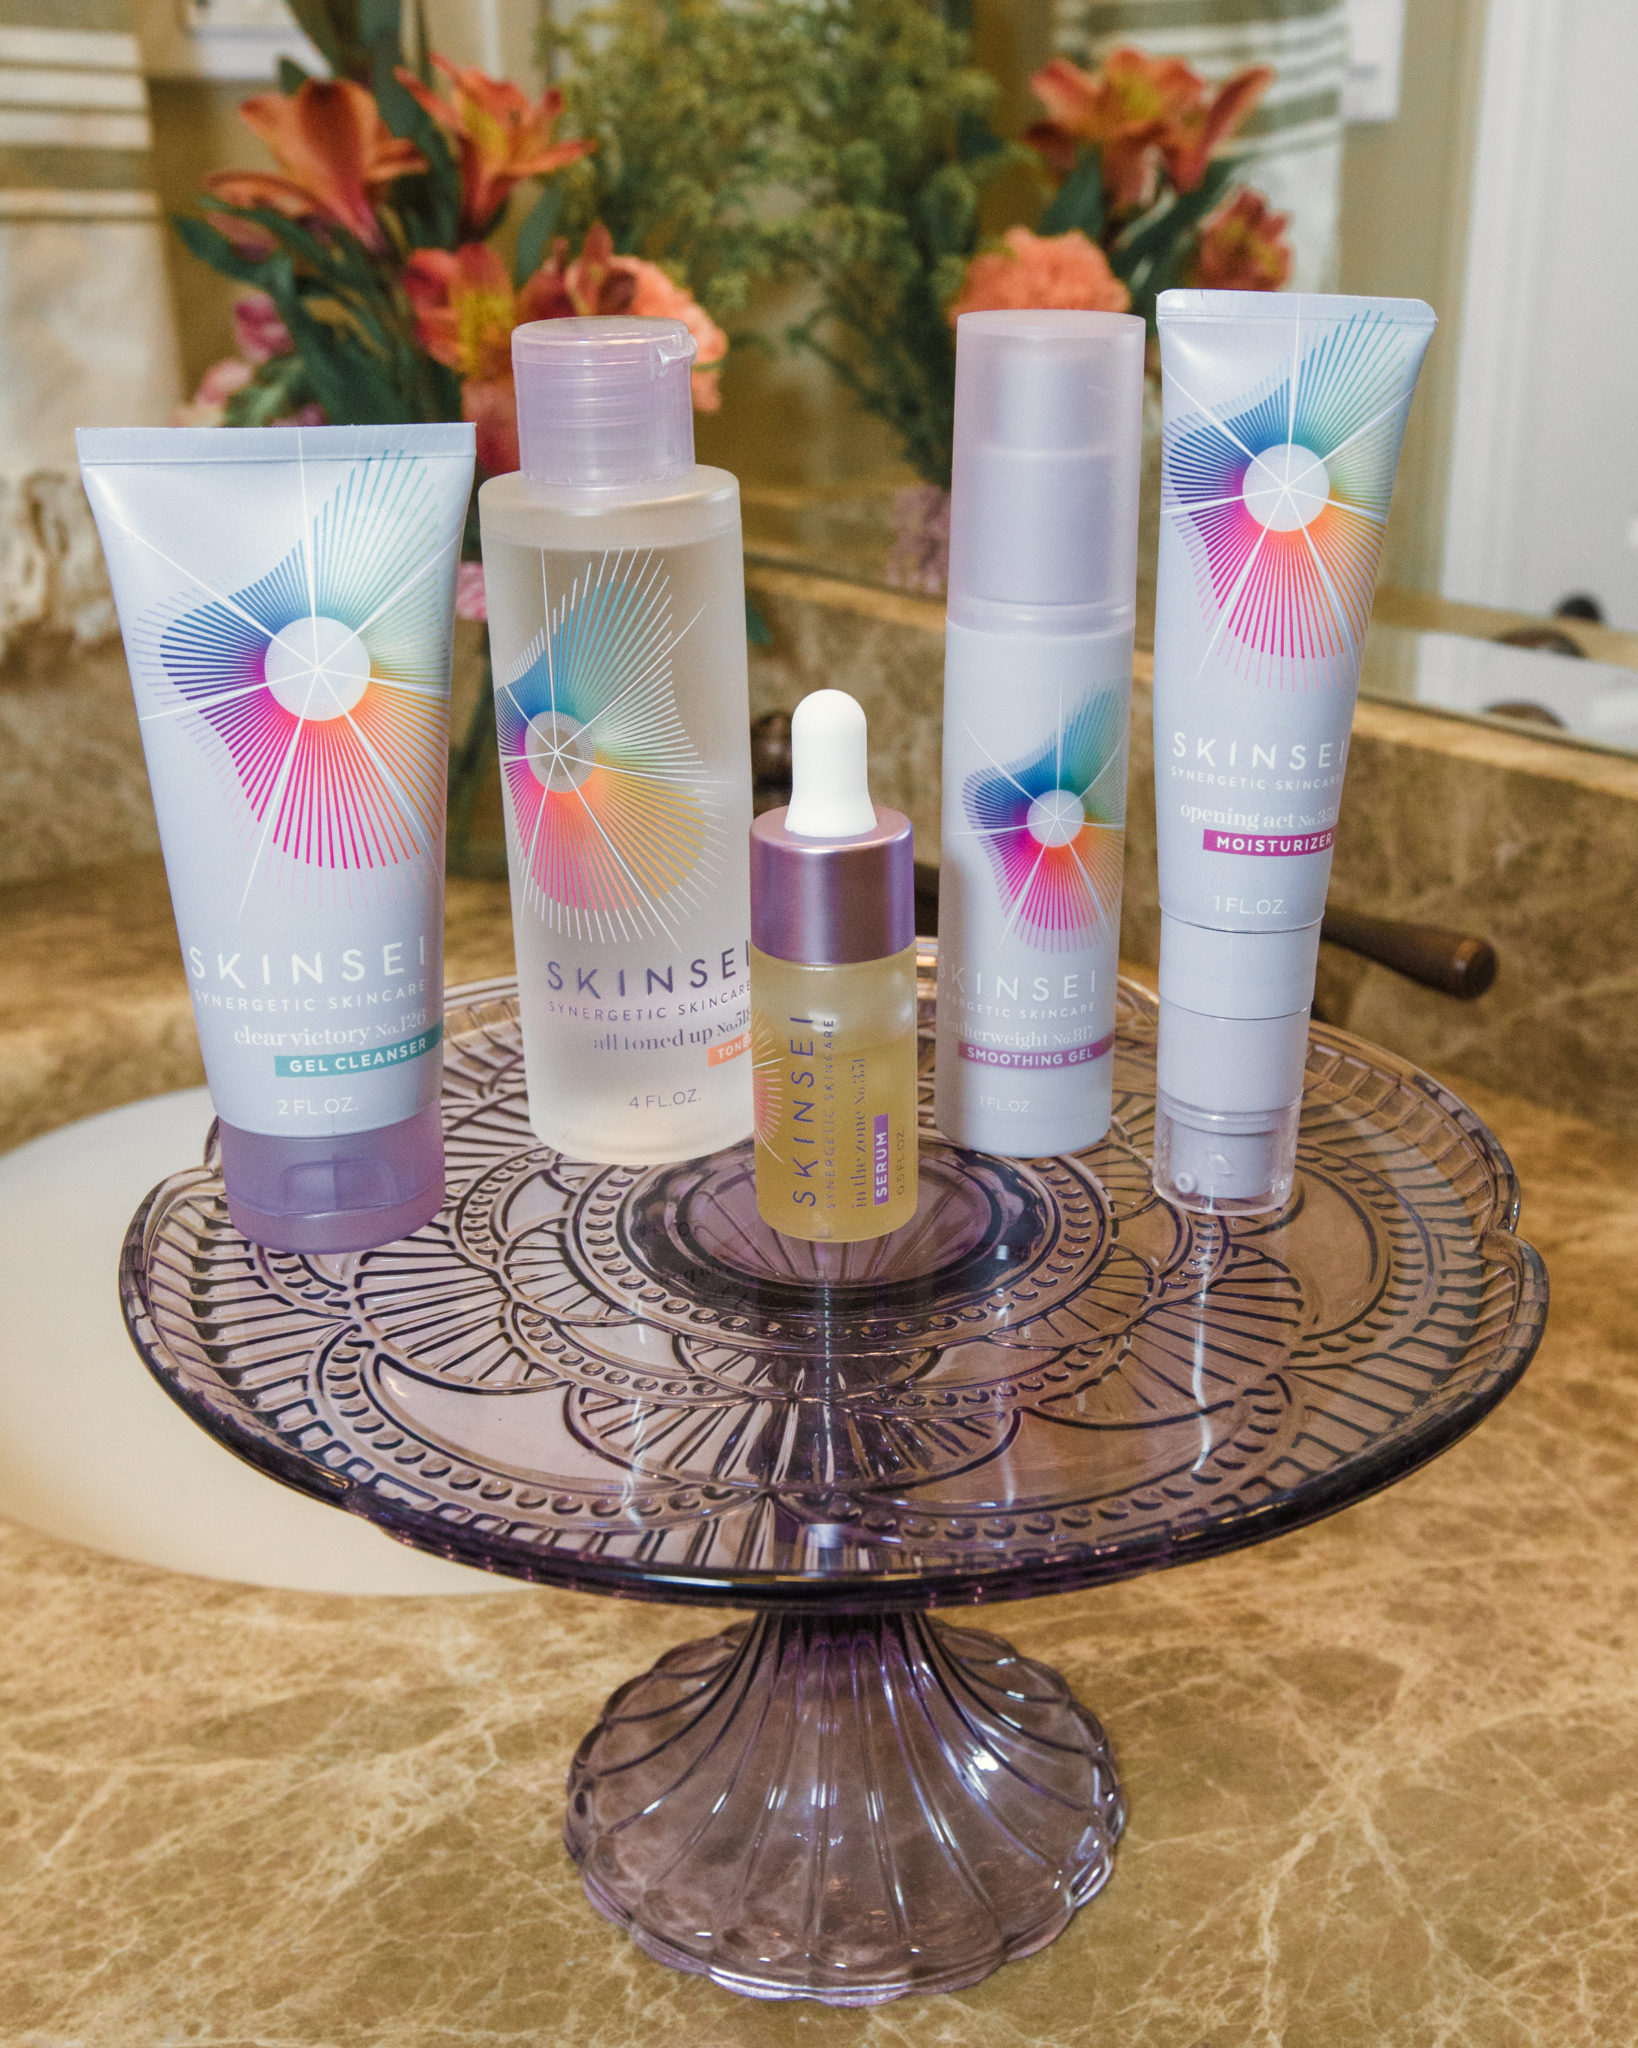 Find Your Personalized Skinsei Skincare Routine by popular Chicago beauty blog, Glass of Glam: image of Skinsei skincare products.